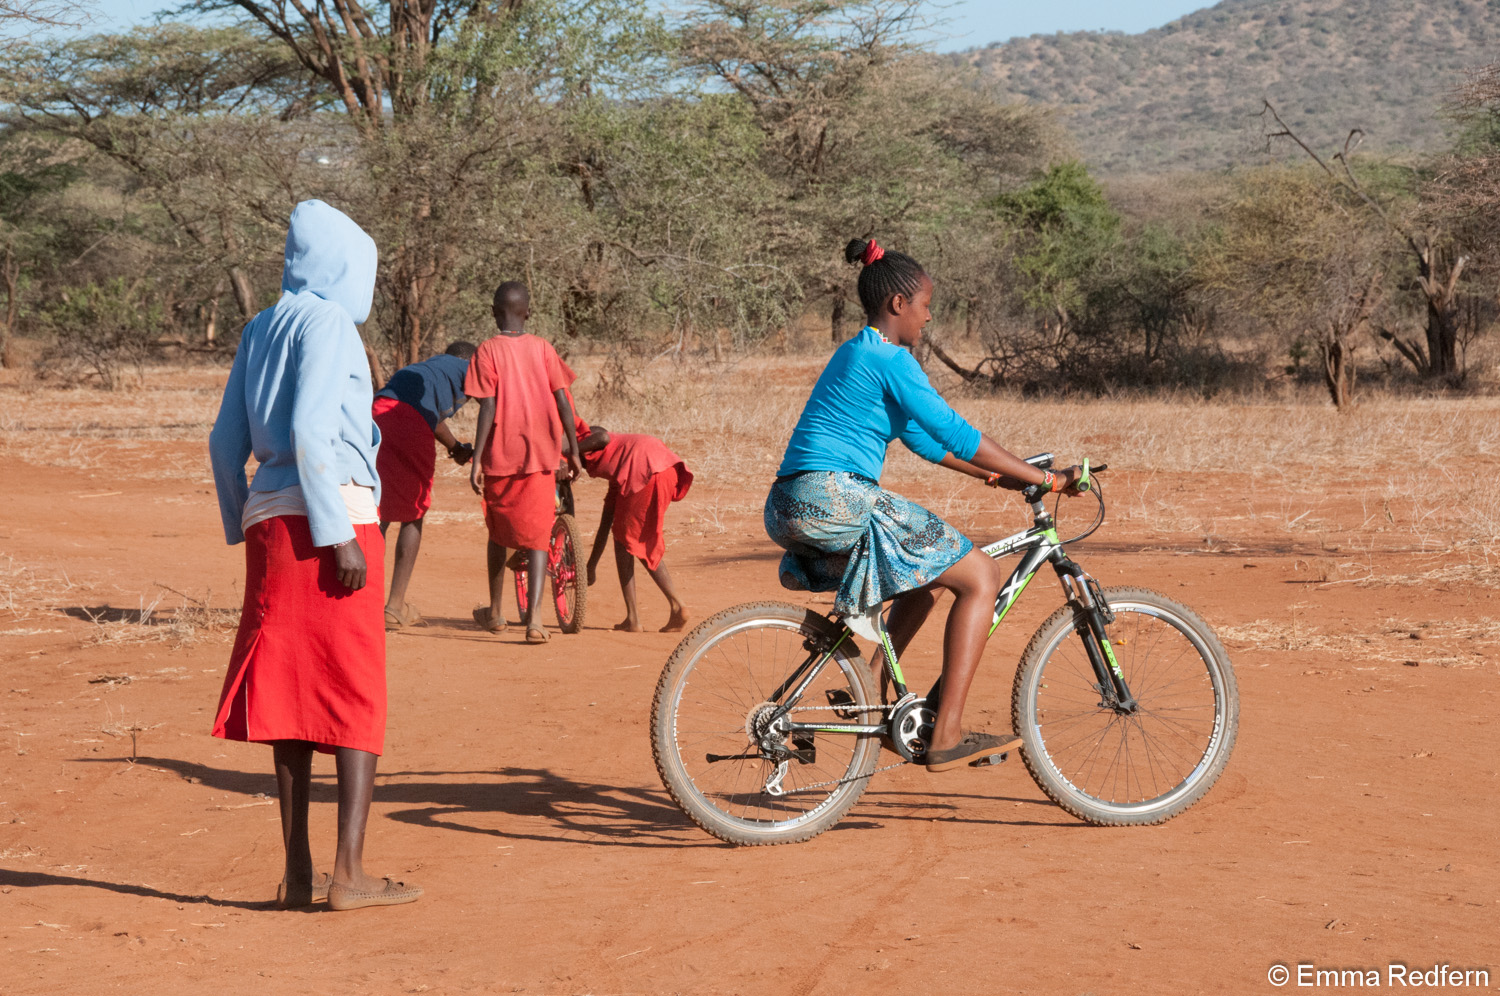 Our two trainee teachers are also learning to ride a bicycle.